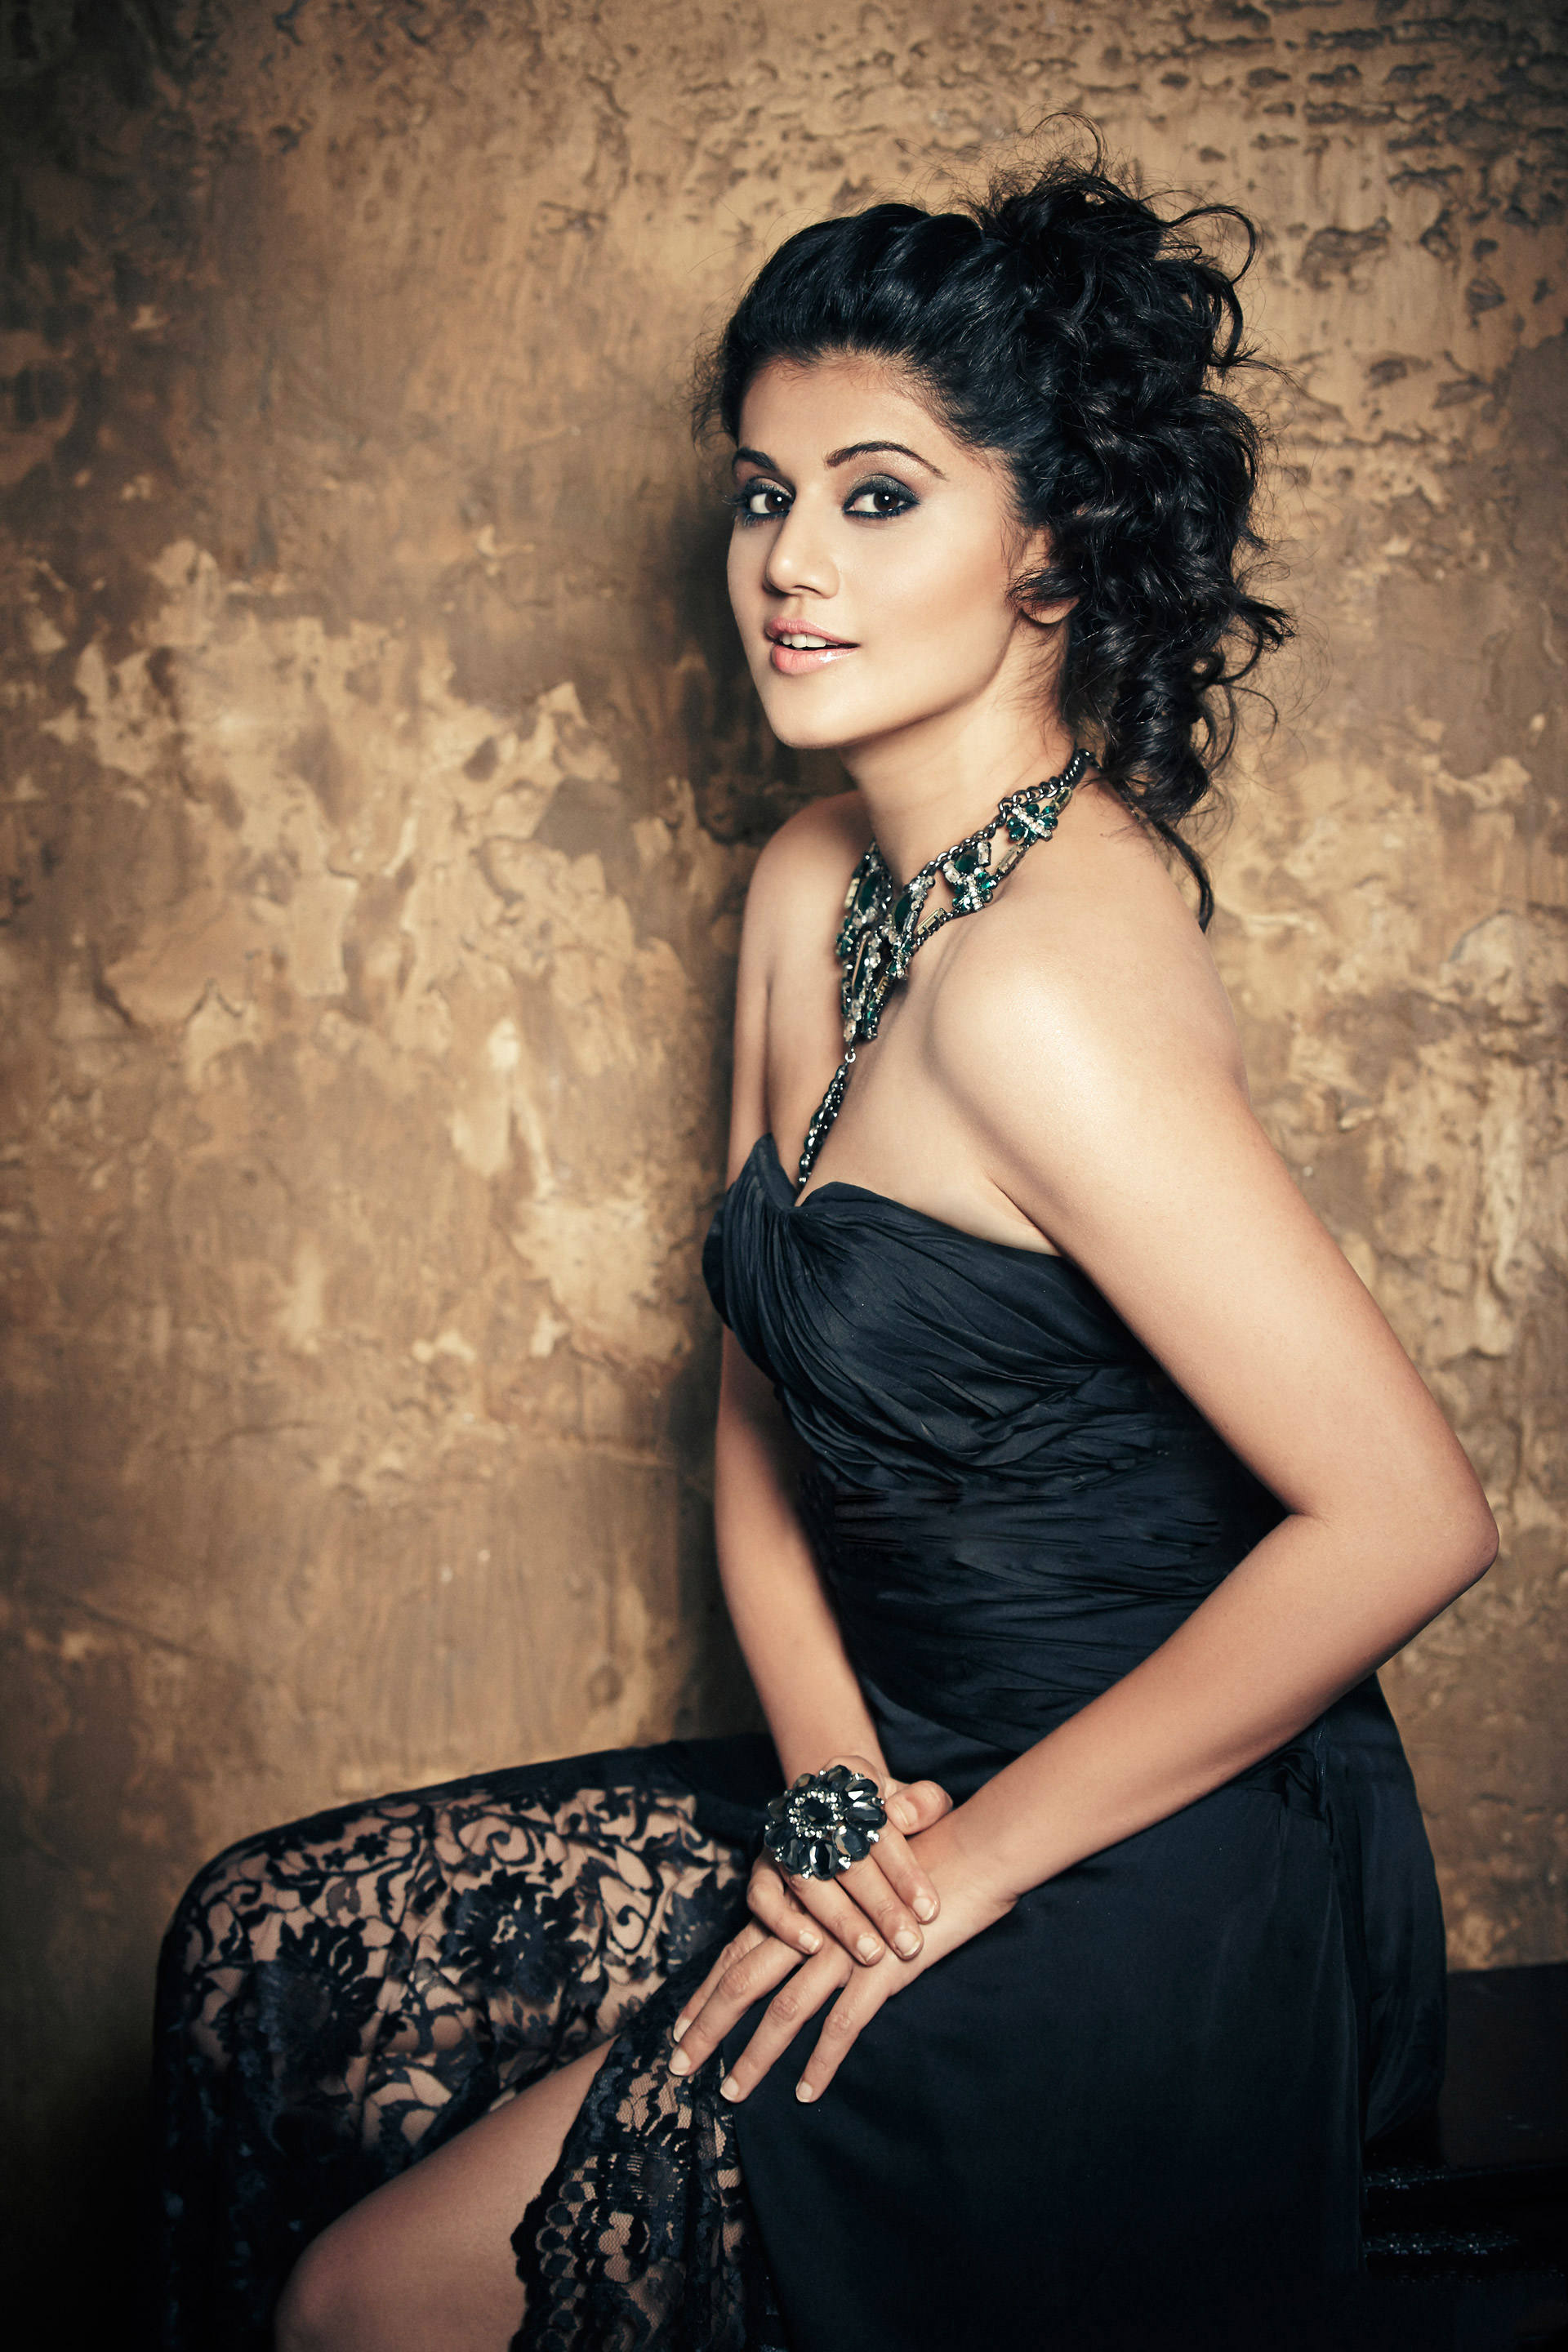 Taapsee-Pannu-Hot Taapsee Pannu 11+ Unseen Bikini Picture Scorching Attractive Swimsuit Images Age & Toes Wiki